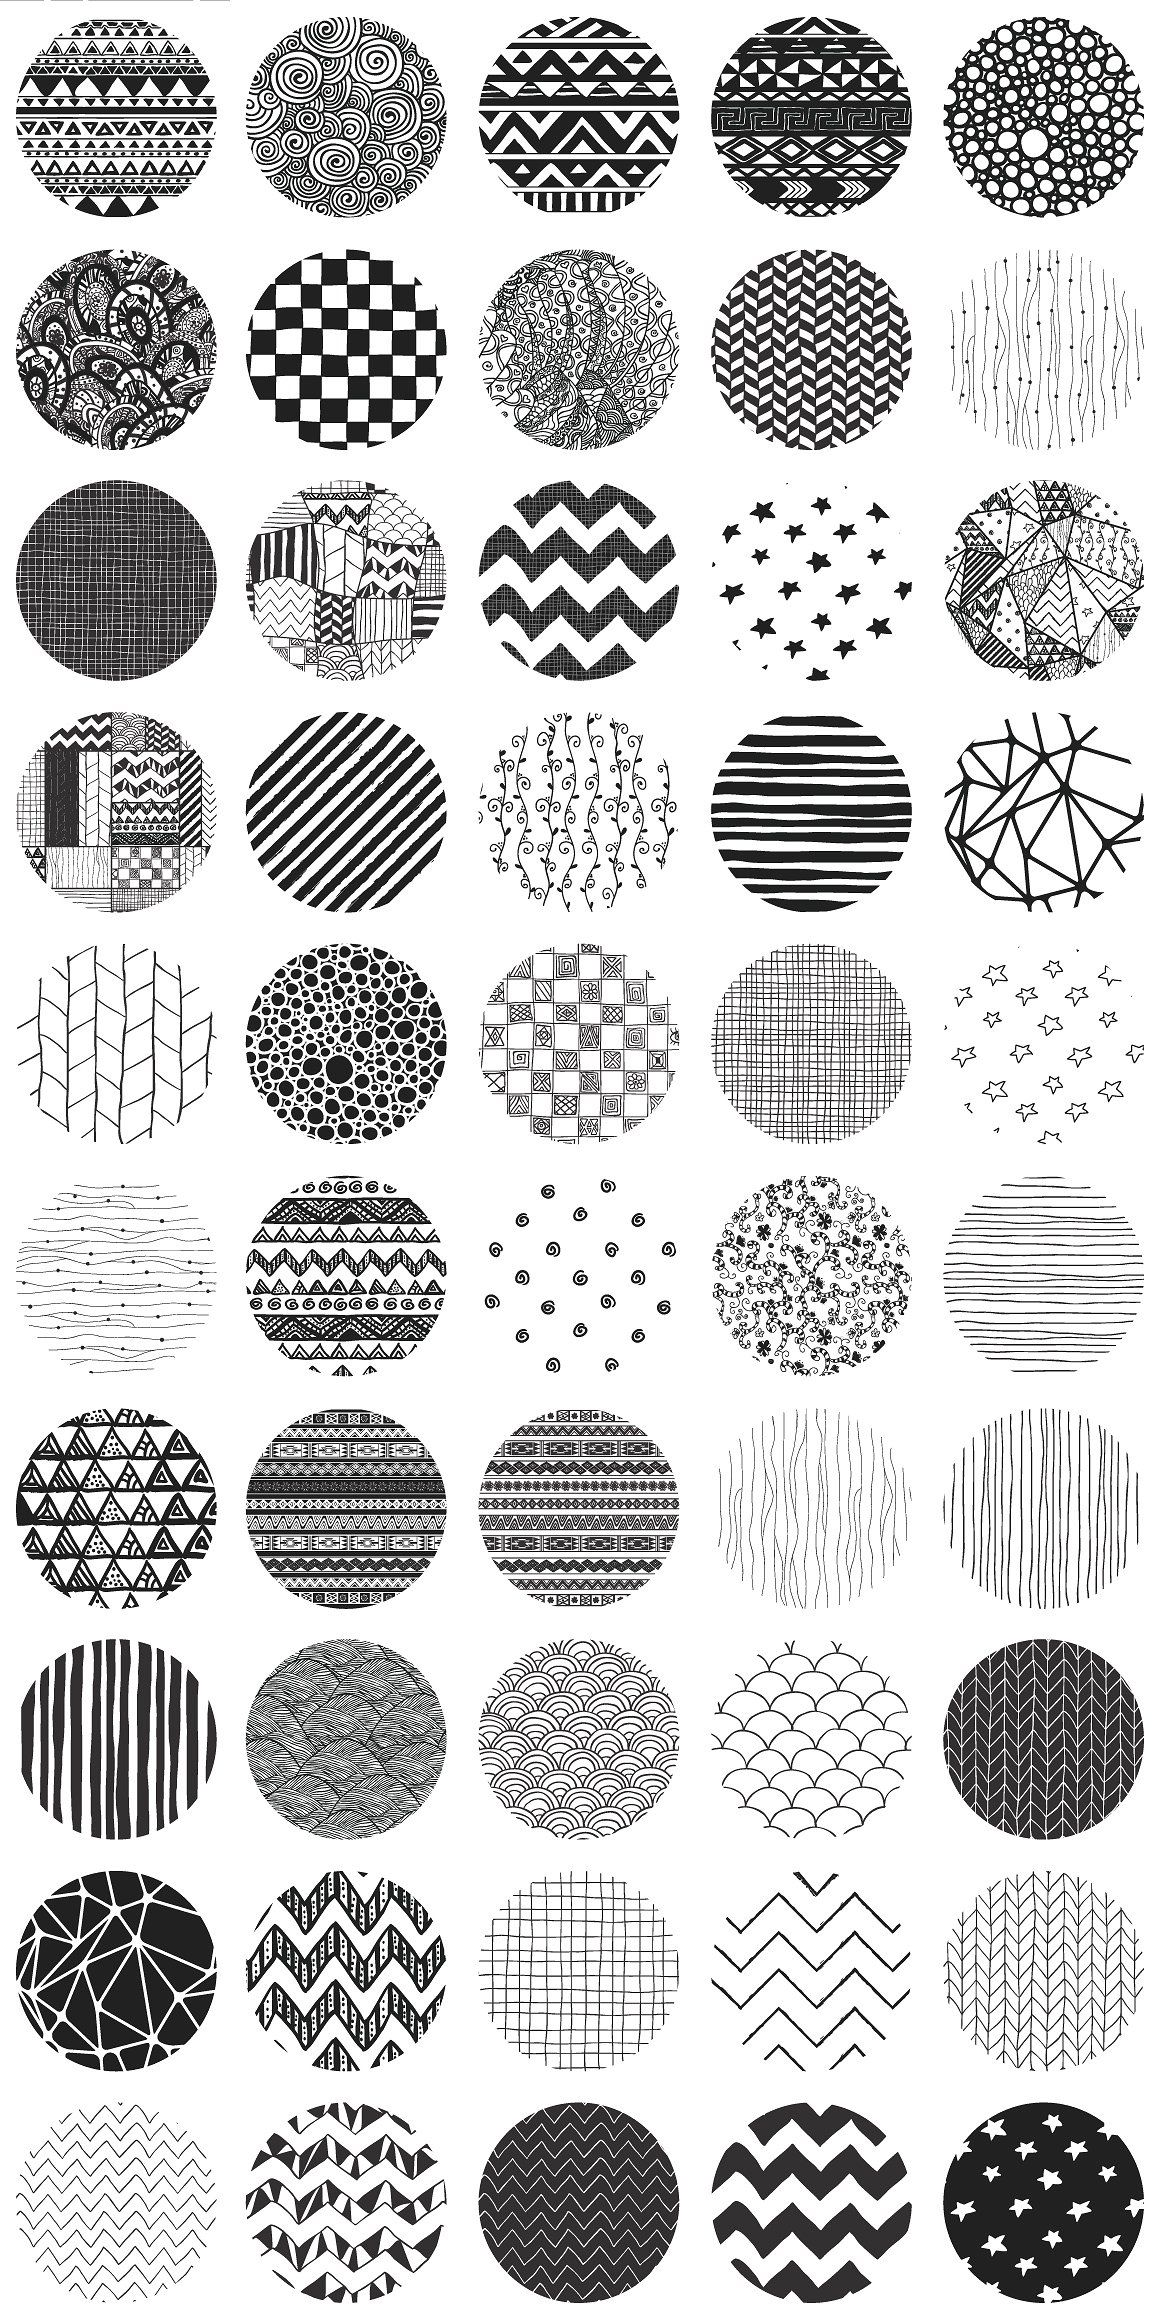 50 Hand Drawn Patterns How To Draw Hands Doodle Patterns Hand